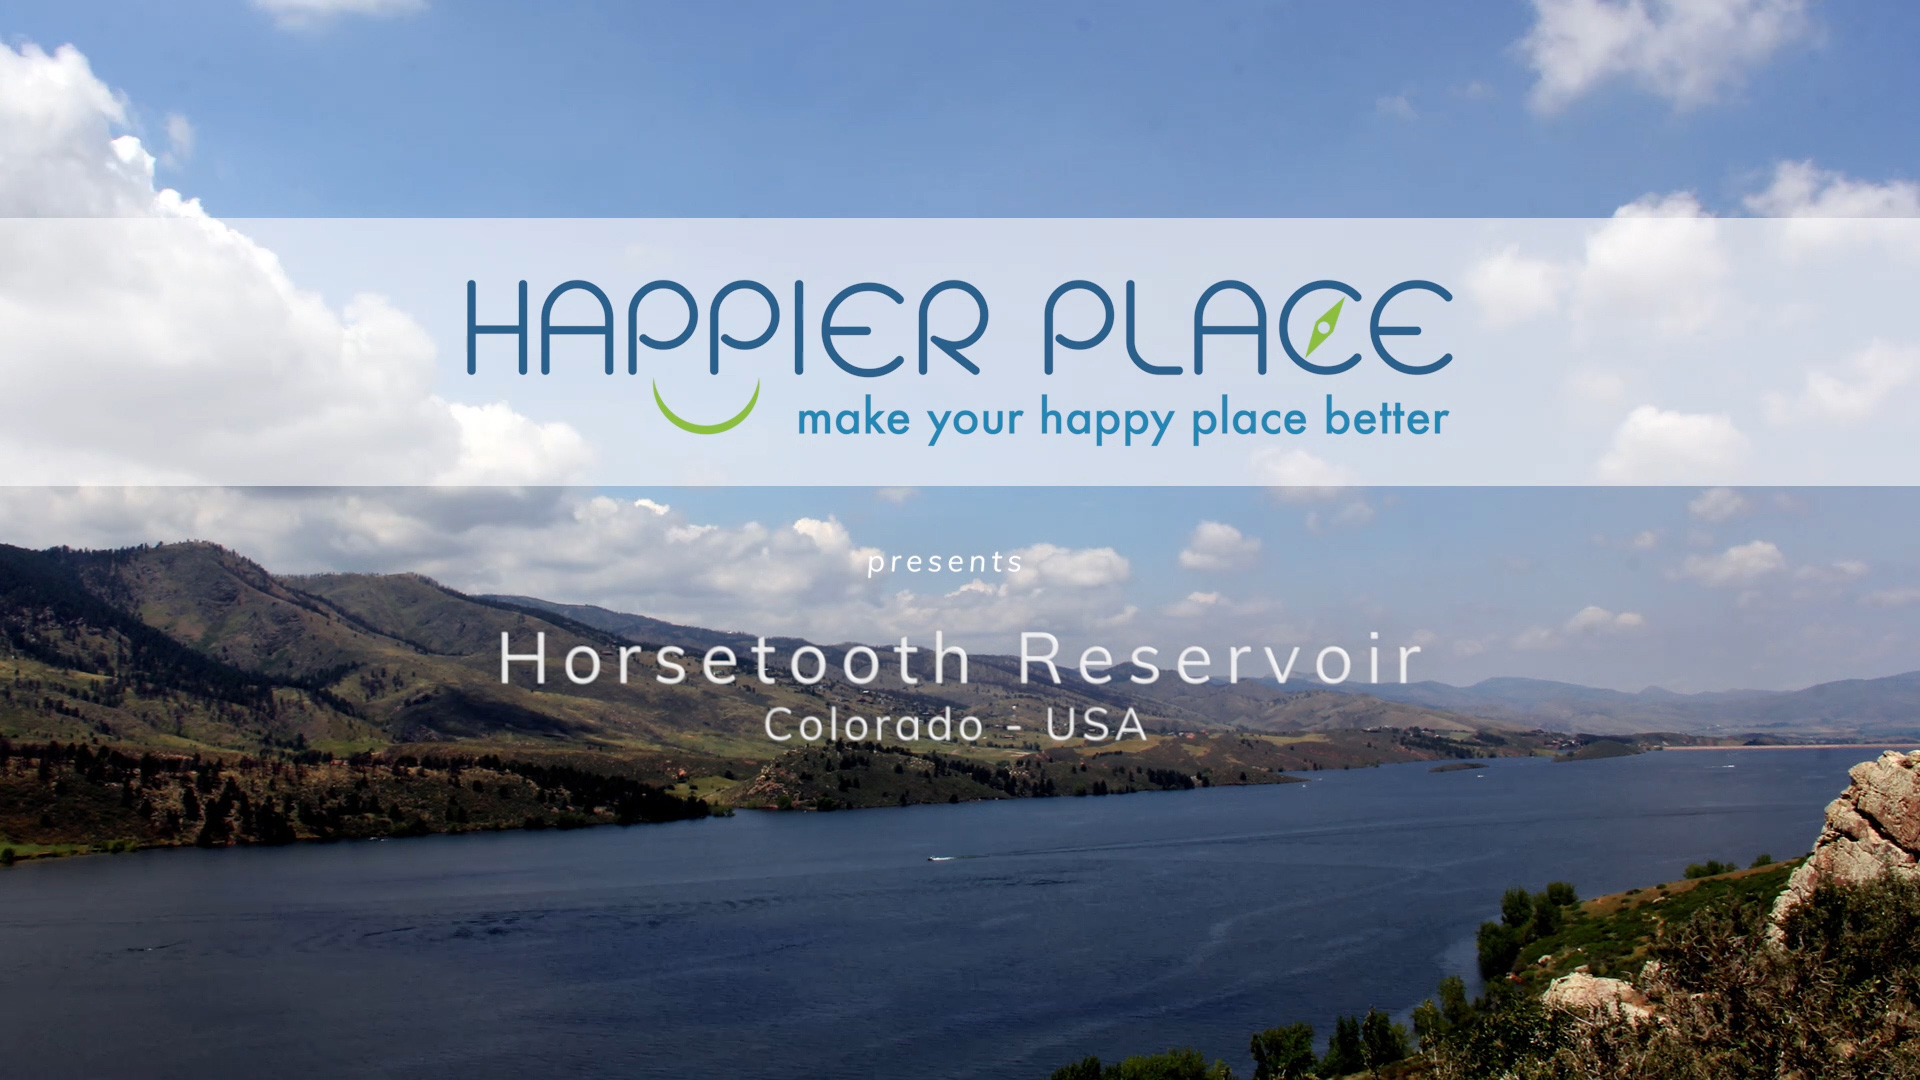 Horsetooth Reservoir - Colorado - Happier Place